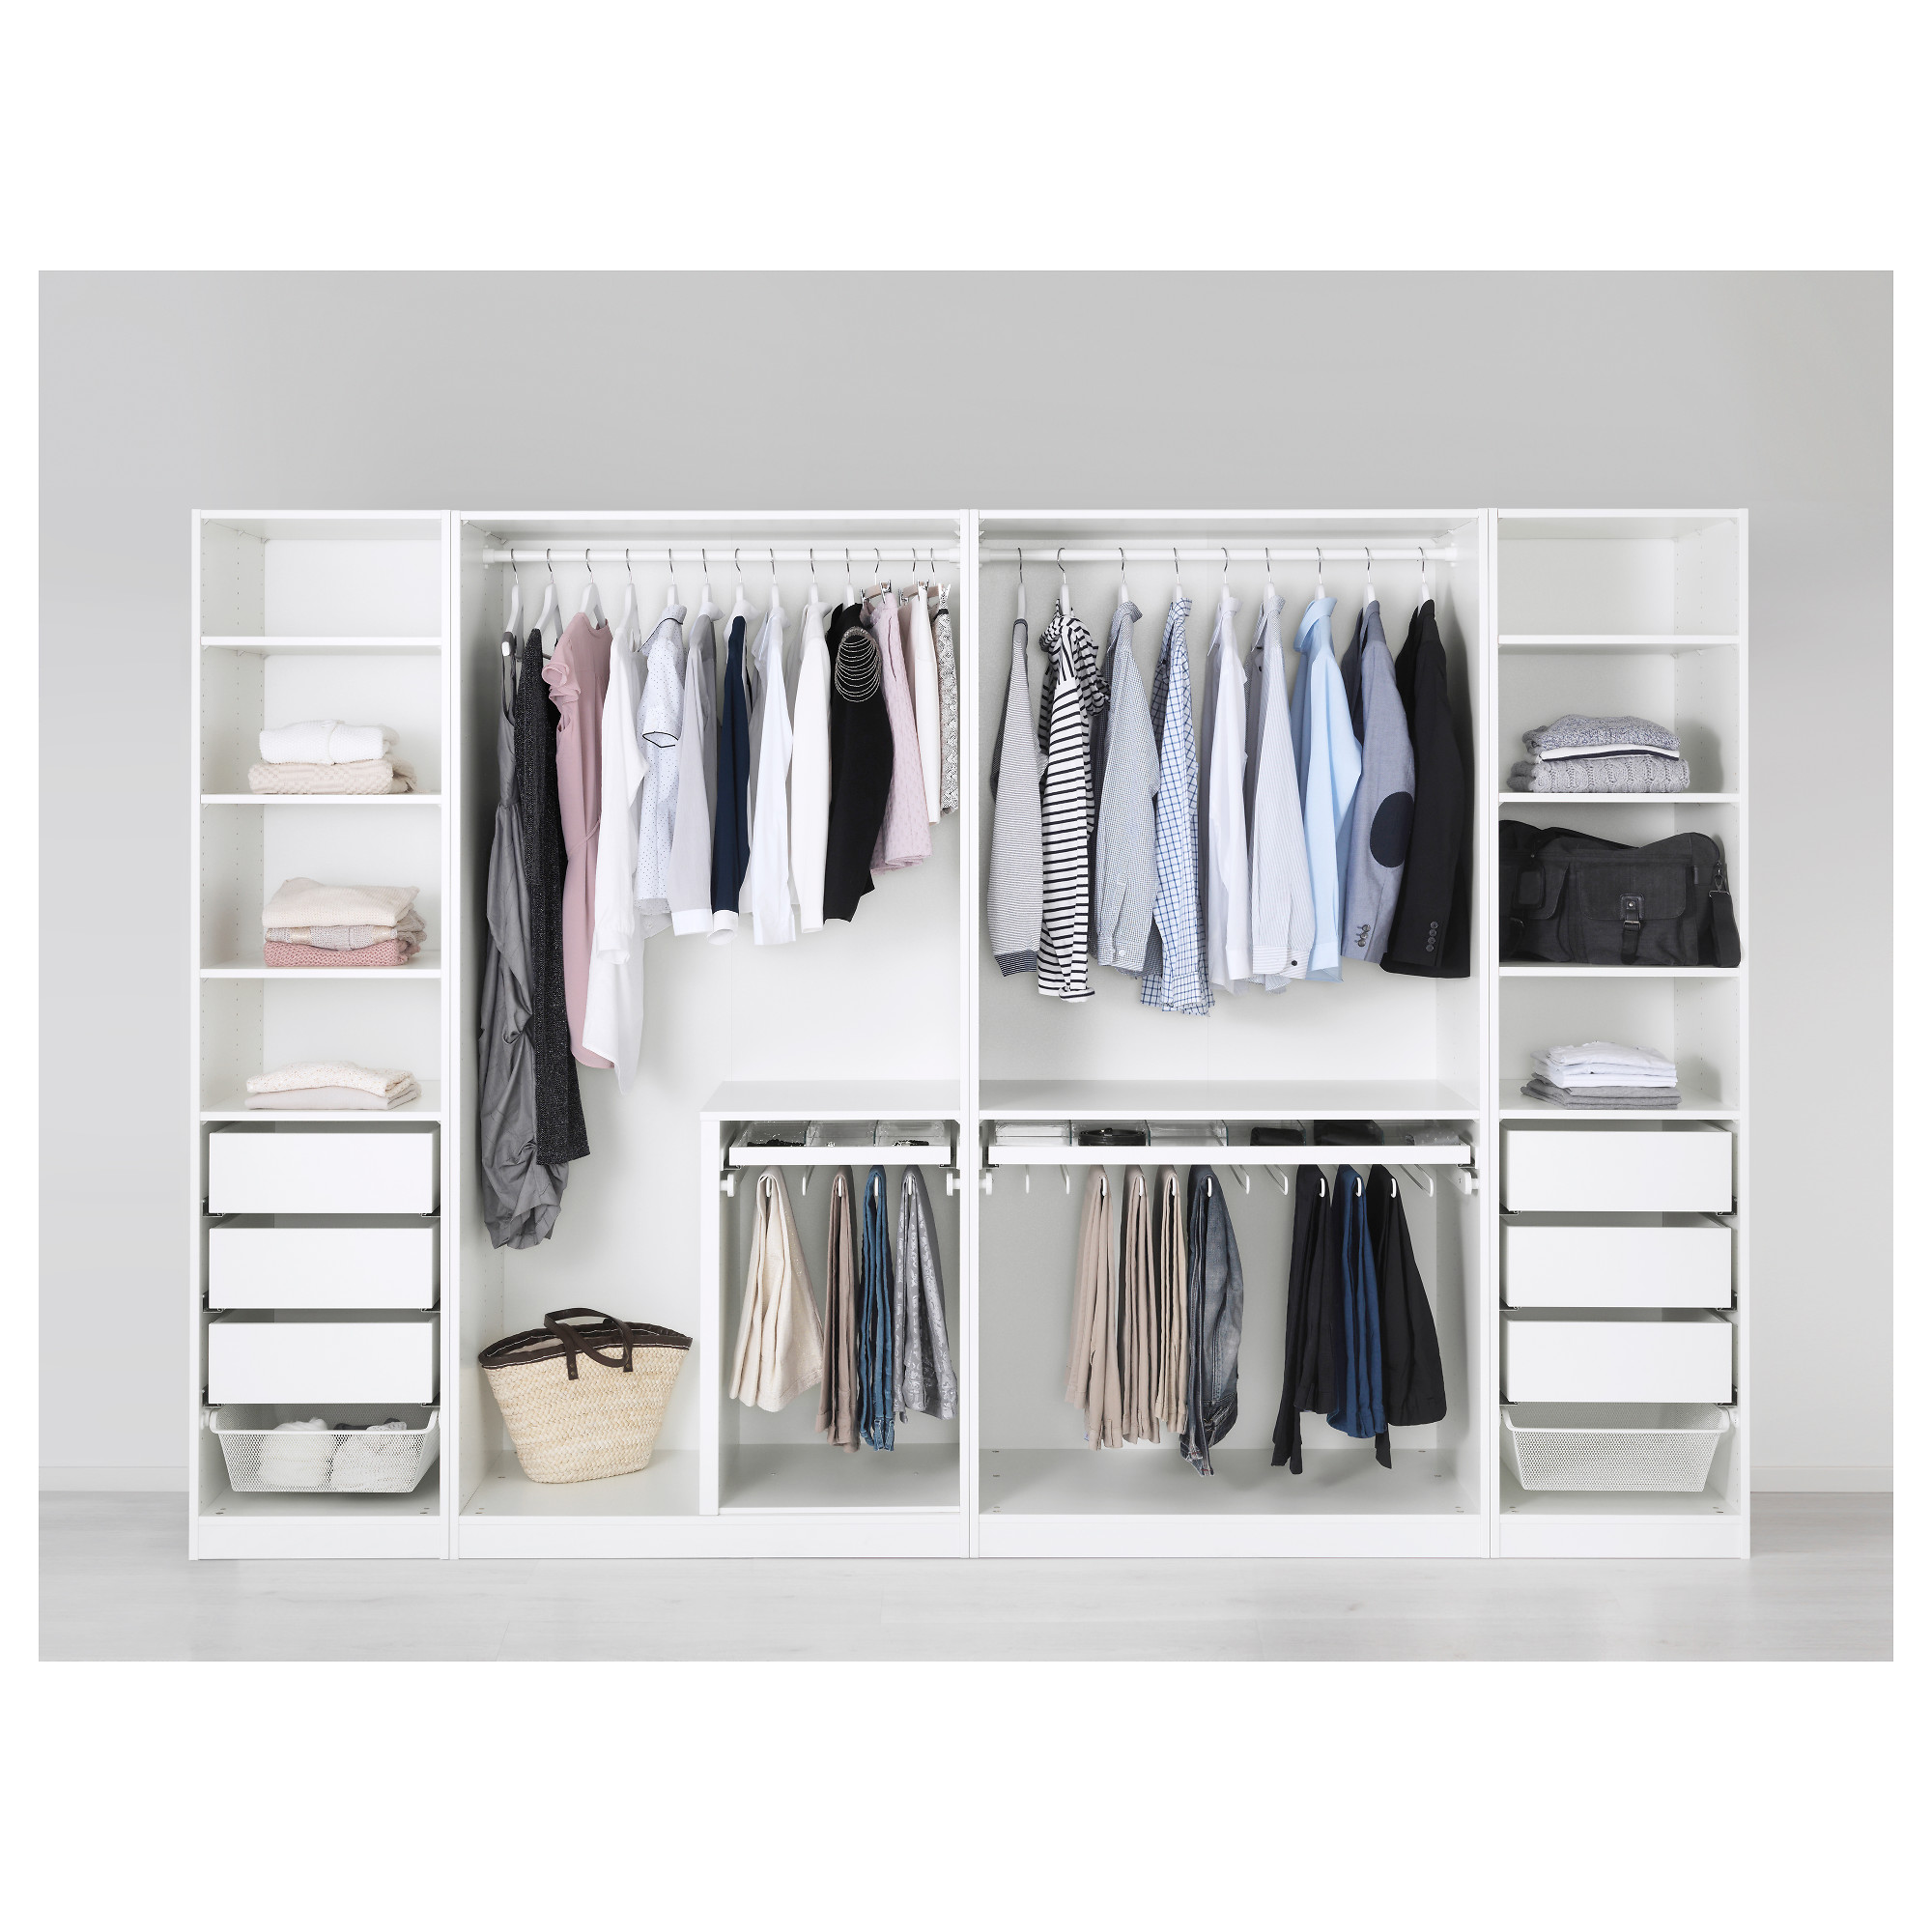 Ikea Wardrobes for Small Spaces | Ikea Pax Closet | Ikea Wardrobe